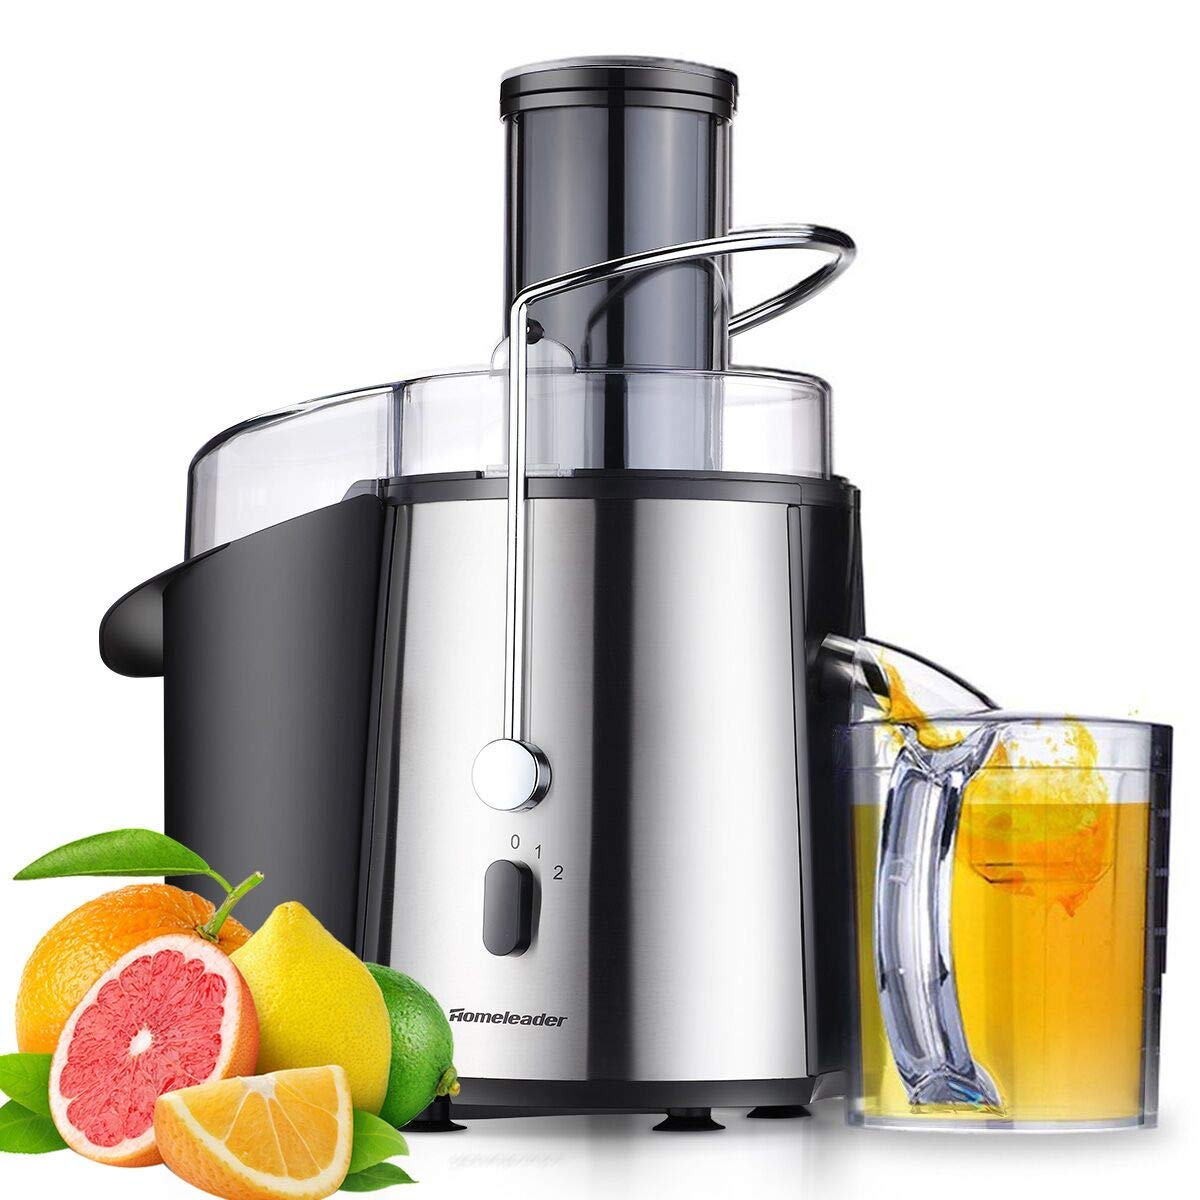 Homeleader Juicer - Juicer Blenders